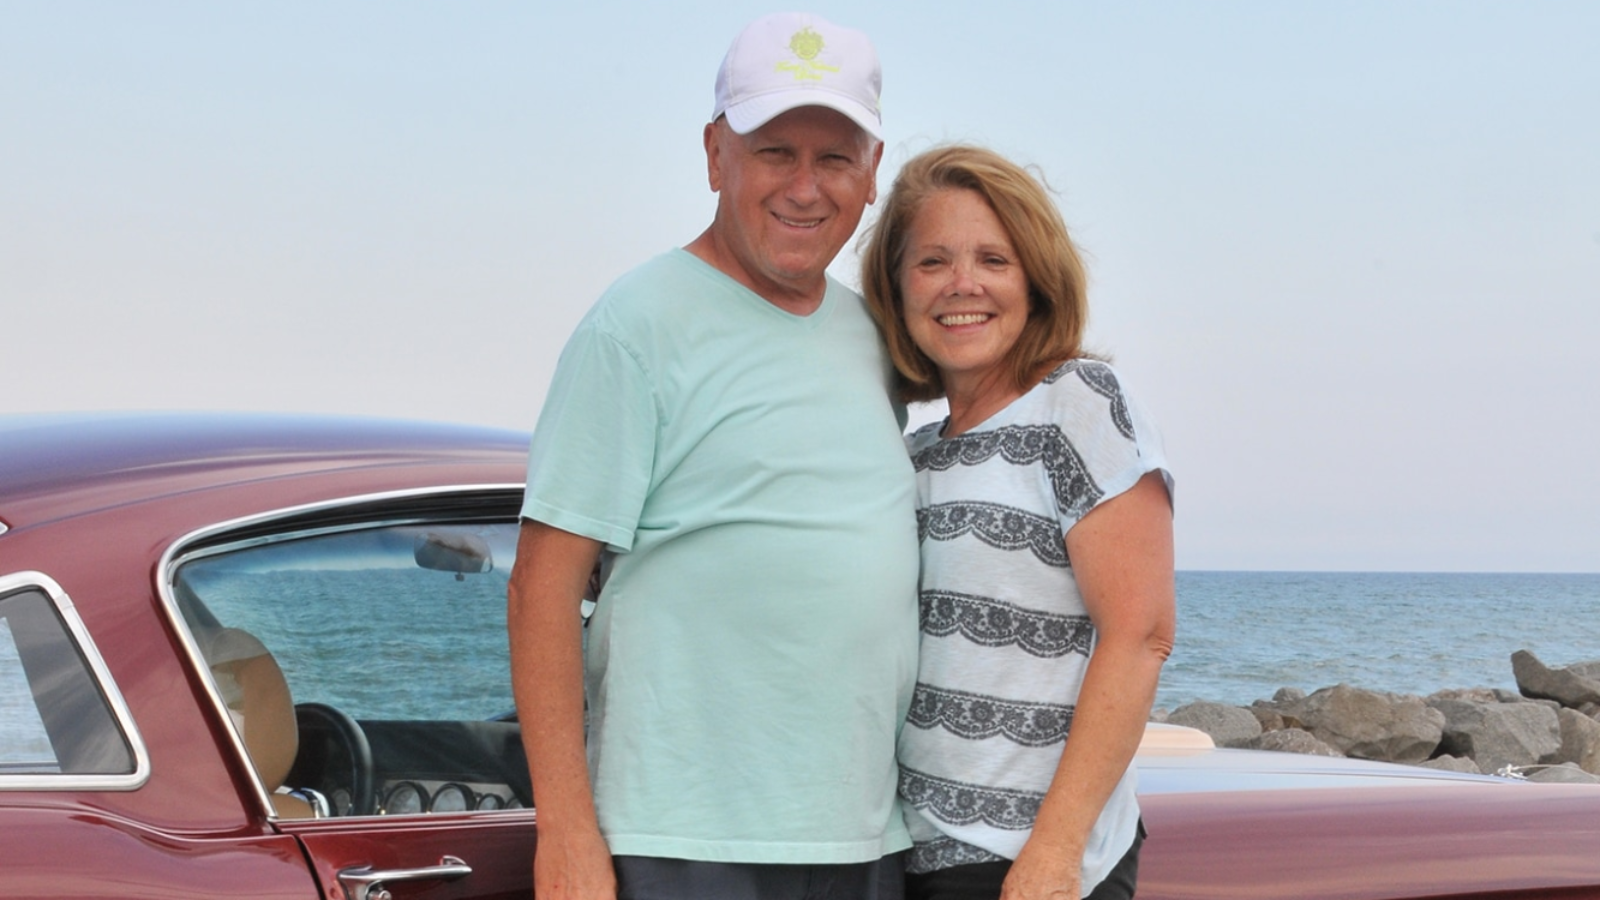 Family Memories: The Life of a 66 Mustang